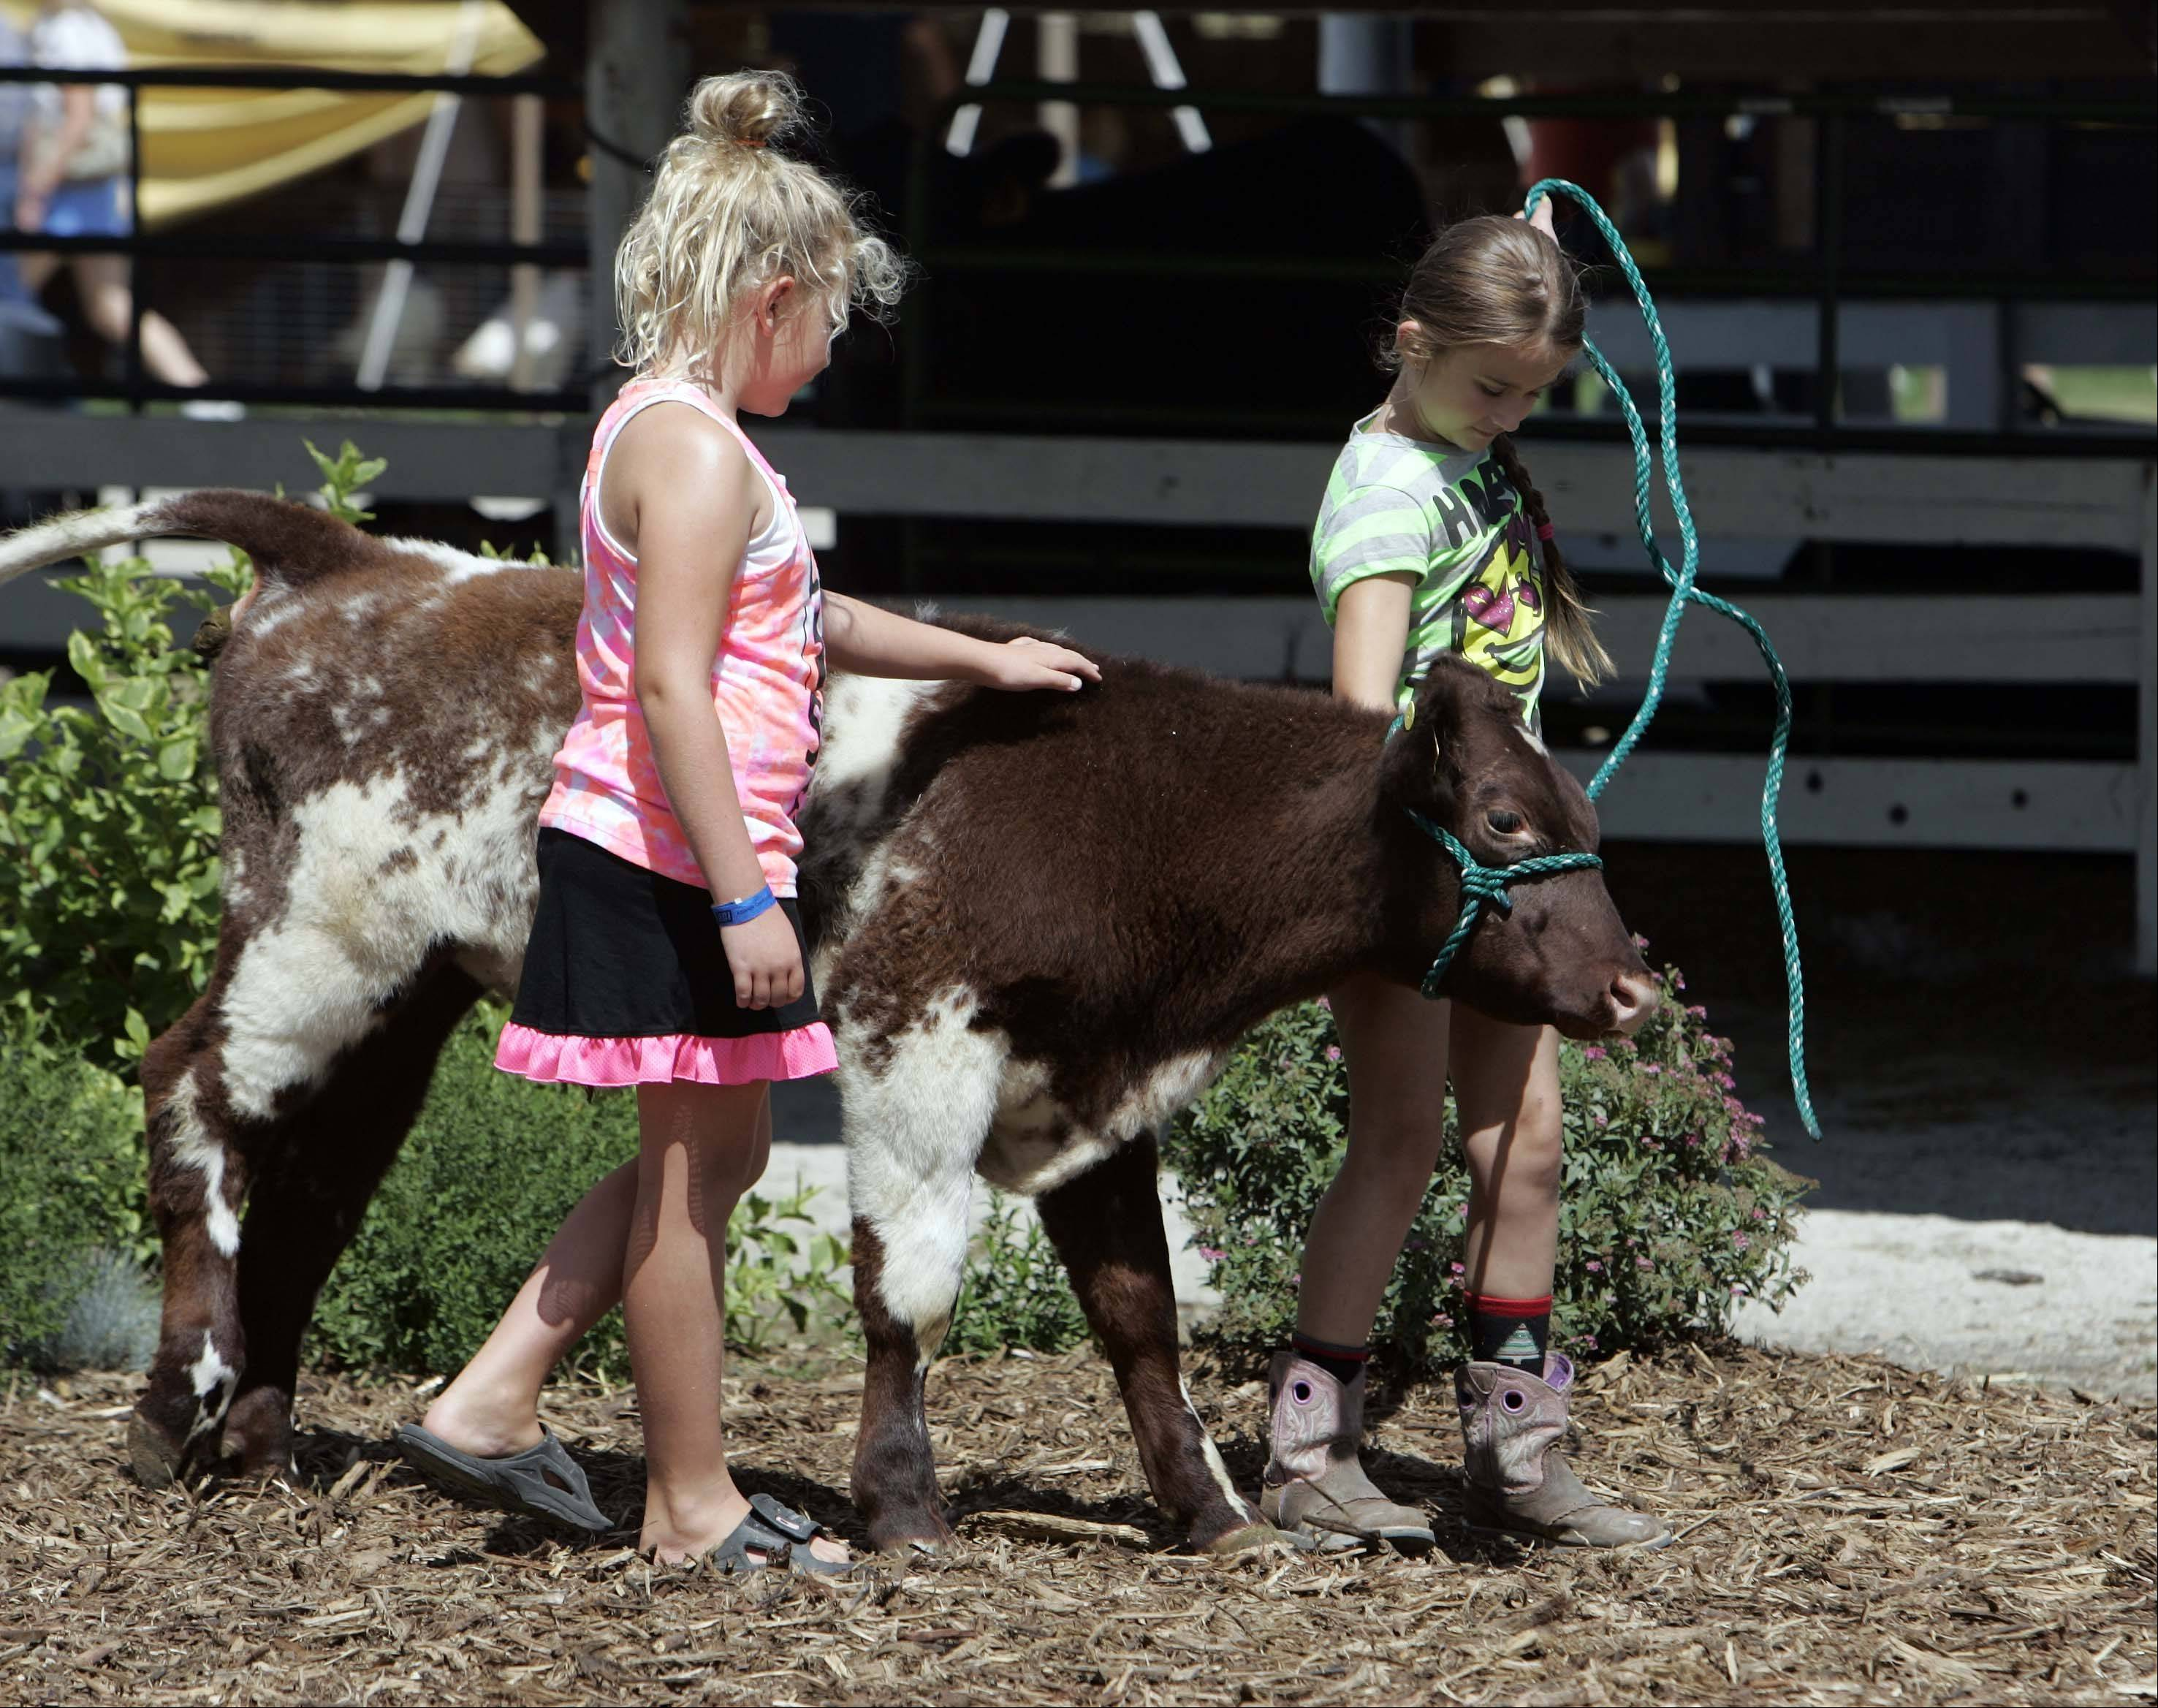 Rachael Kay Freitag, of Hebron, left, and Danielle Menge of Harvard, both 7, try to control RJ, a bull calf, while they have their picture taken Sunday at the McHenry County Fair in Woodstock.